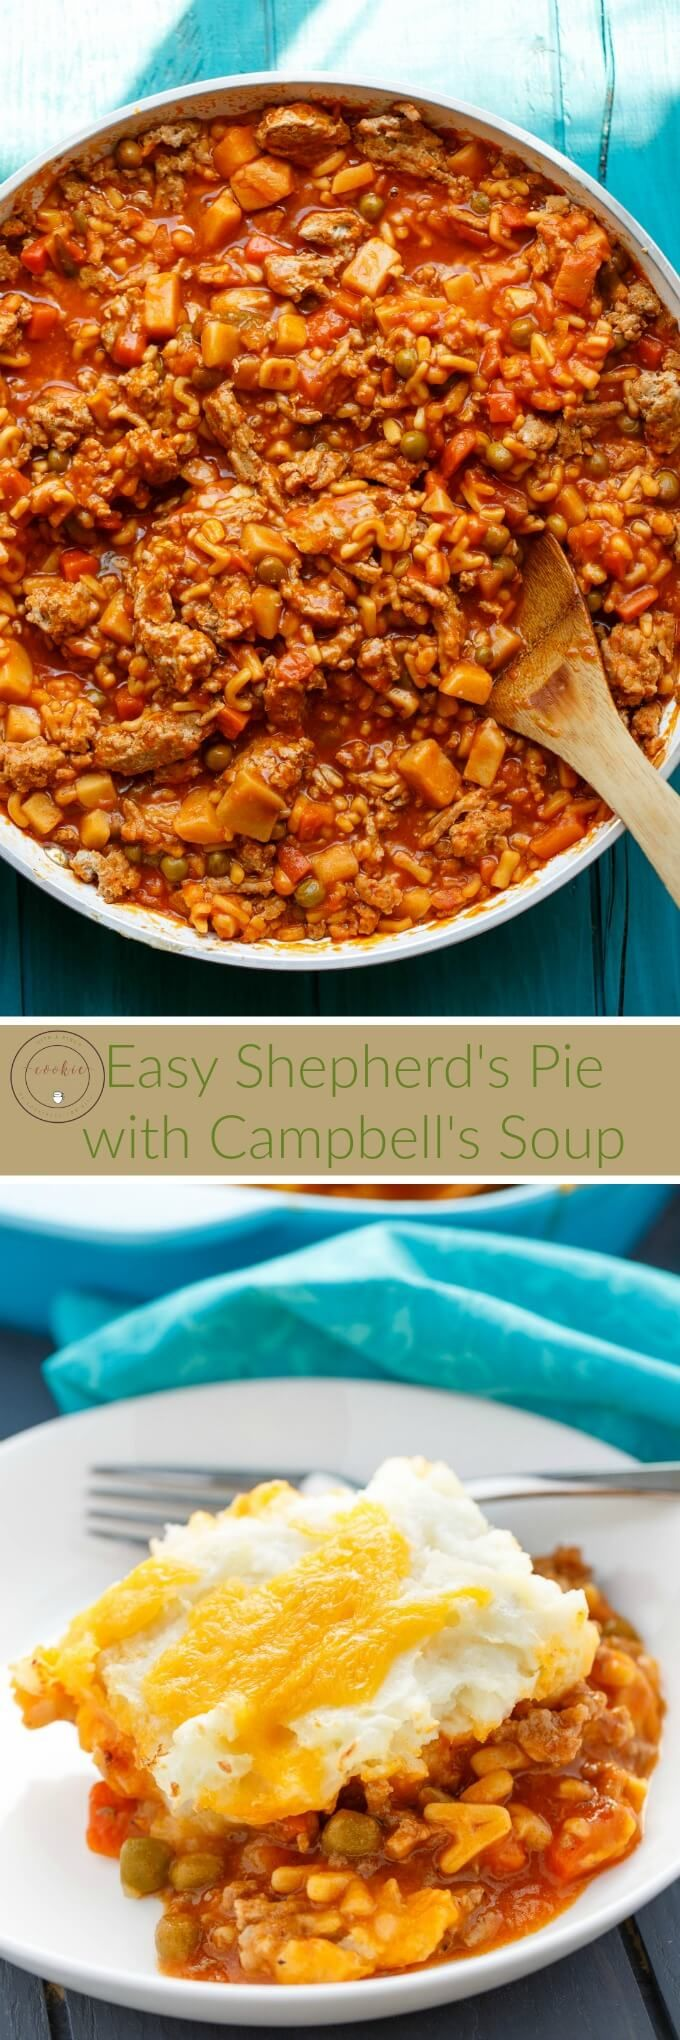 Best 25+ Campbells soup recipes ideas on Pinterest ...